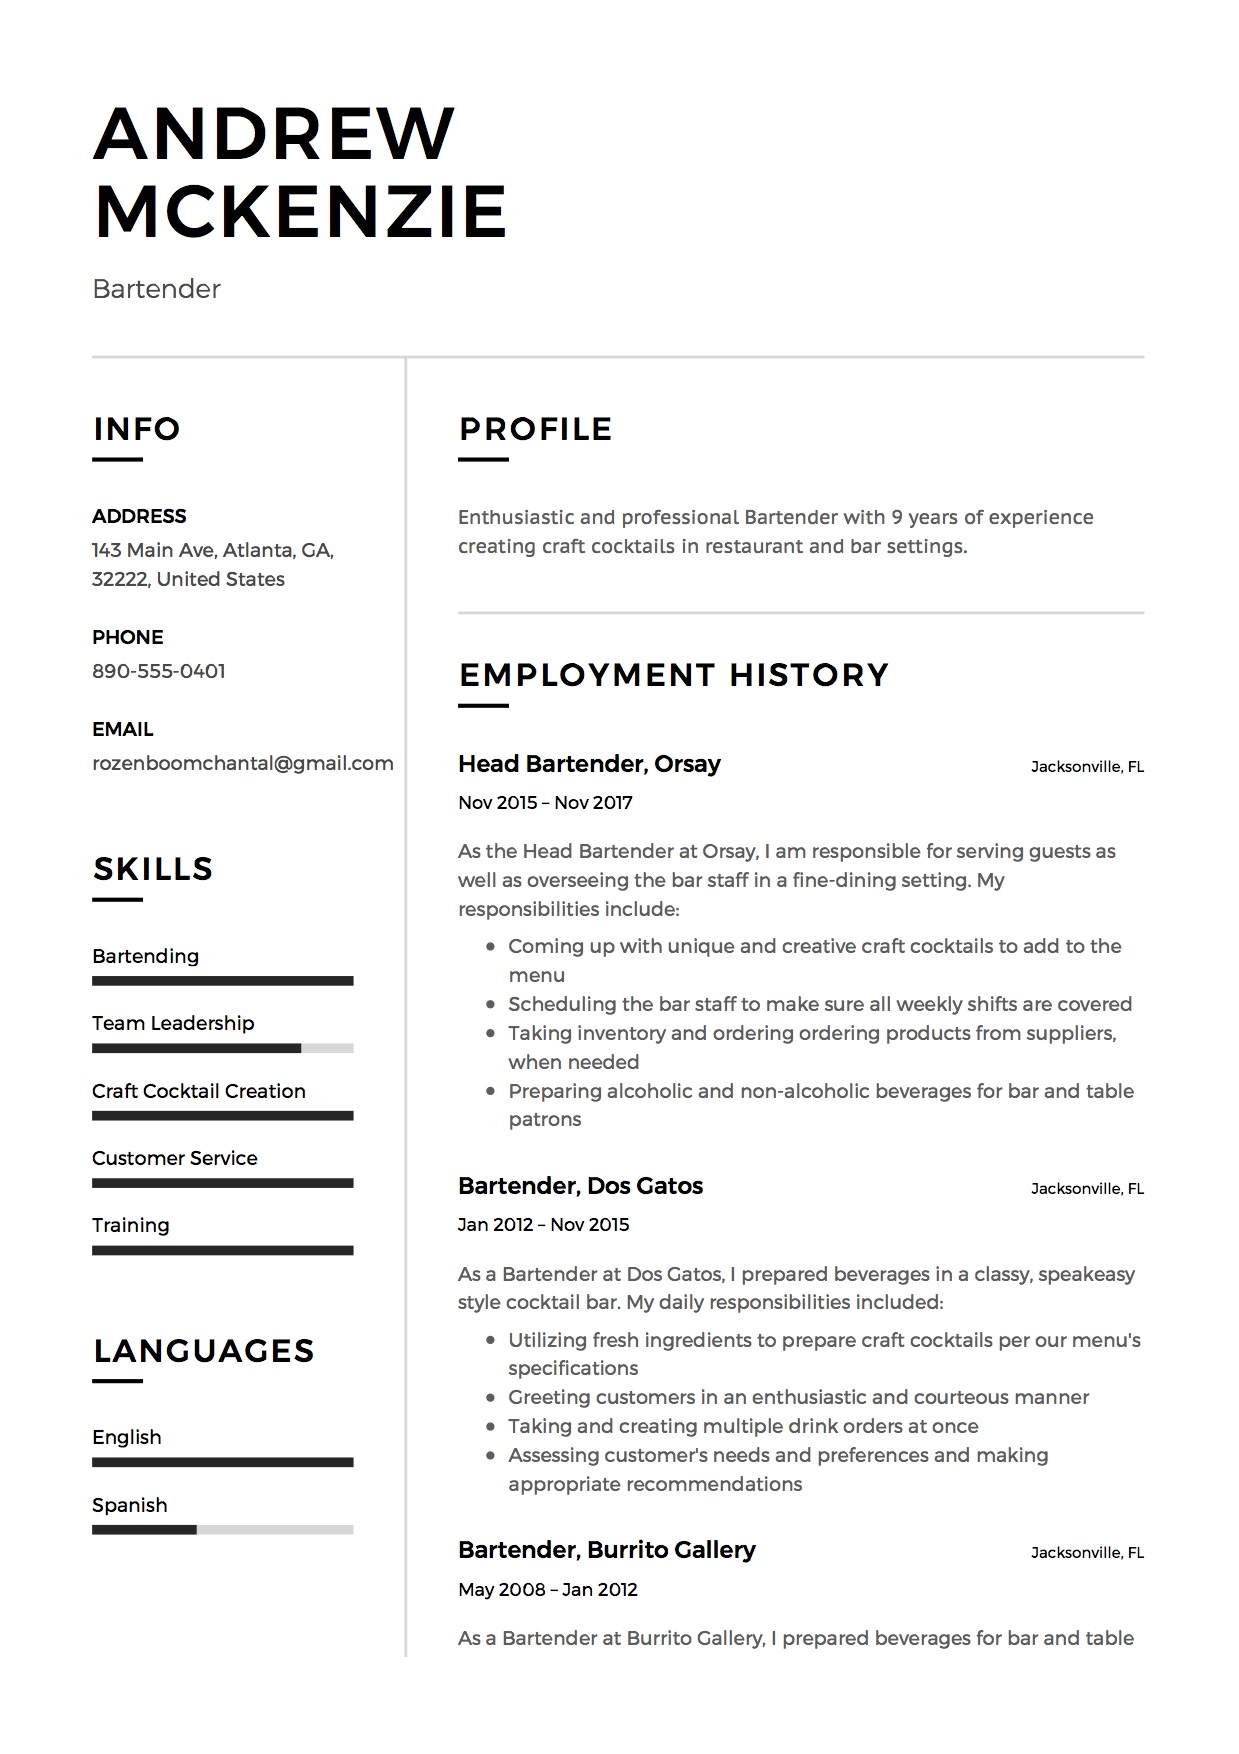 Bartender Resume Sample | 12 Creative Resume Examples | 2018